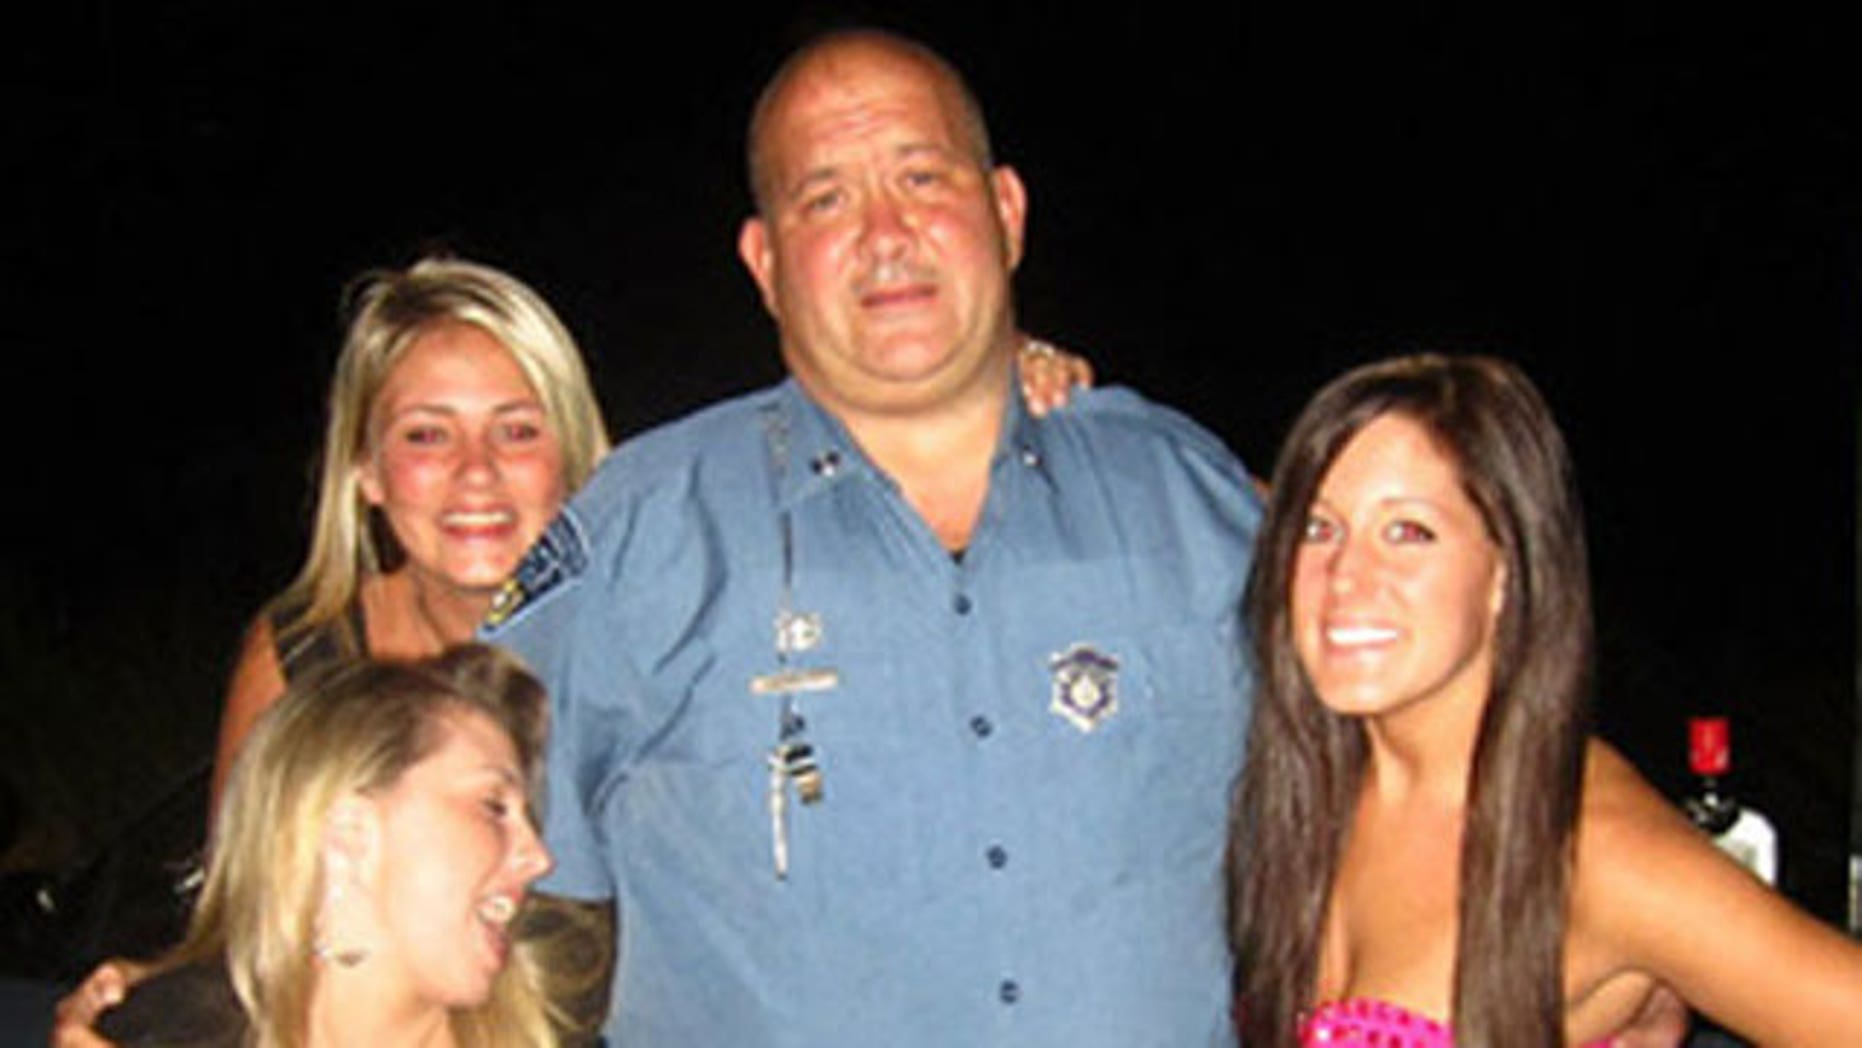 Sergeant Posed For Pictures With Underage Women